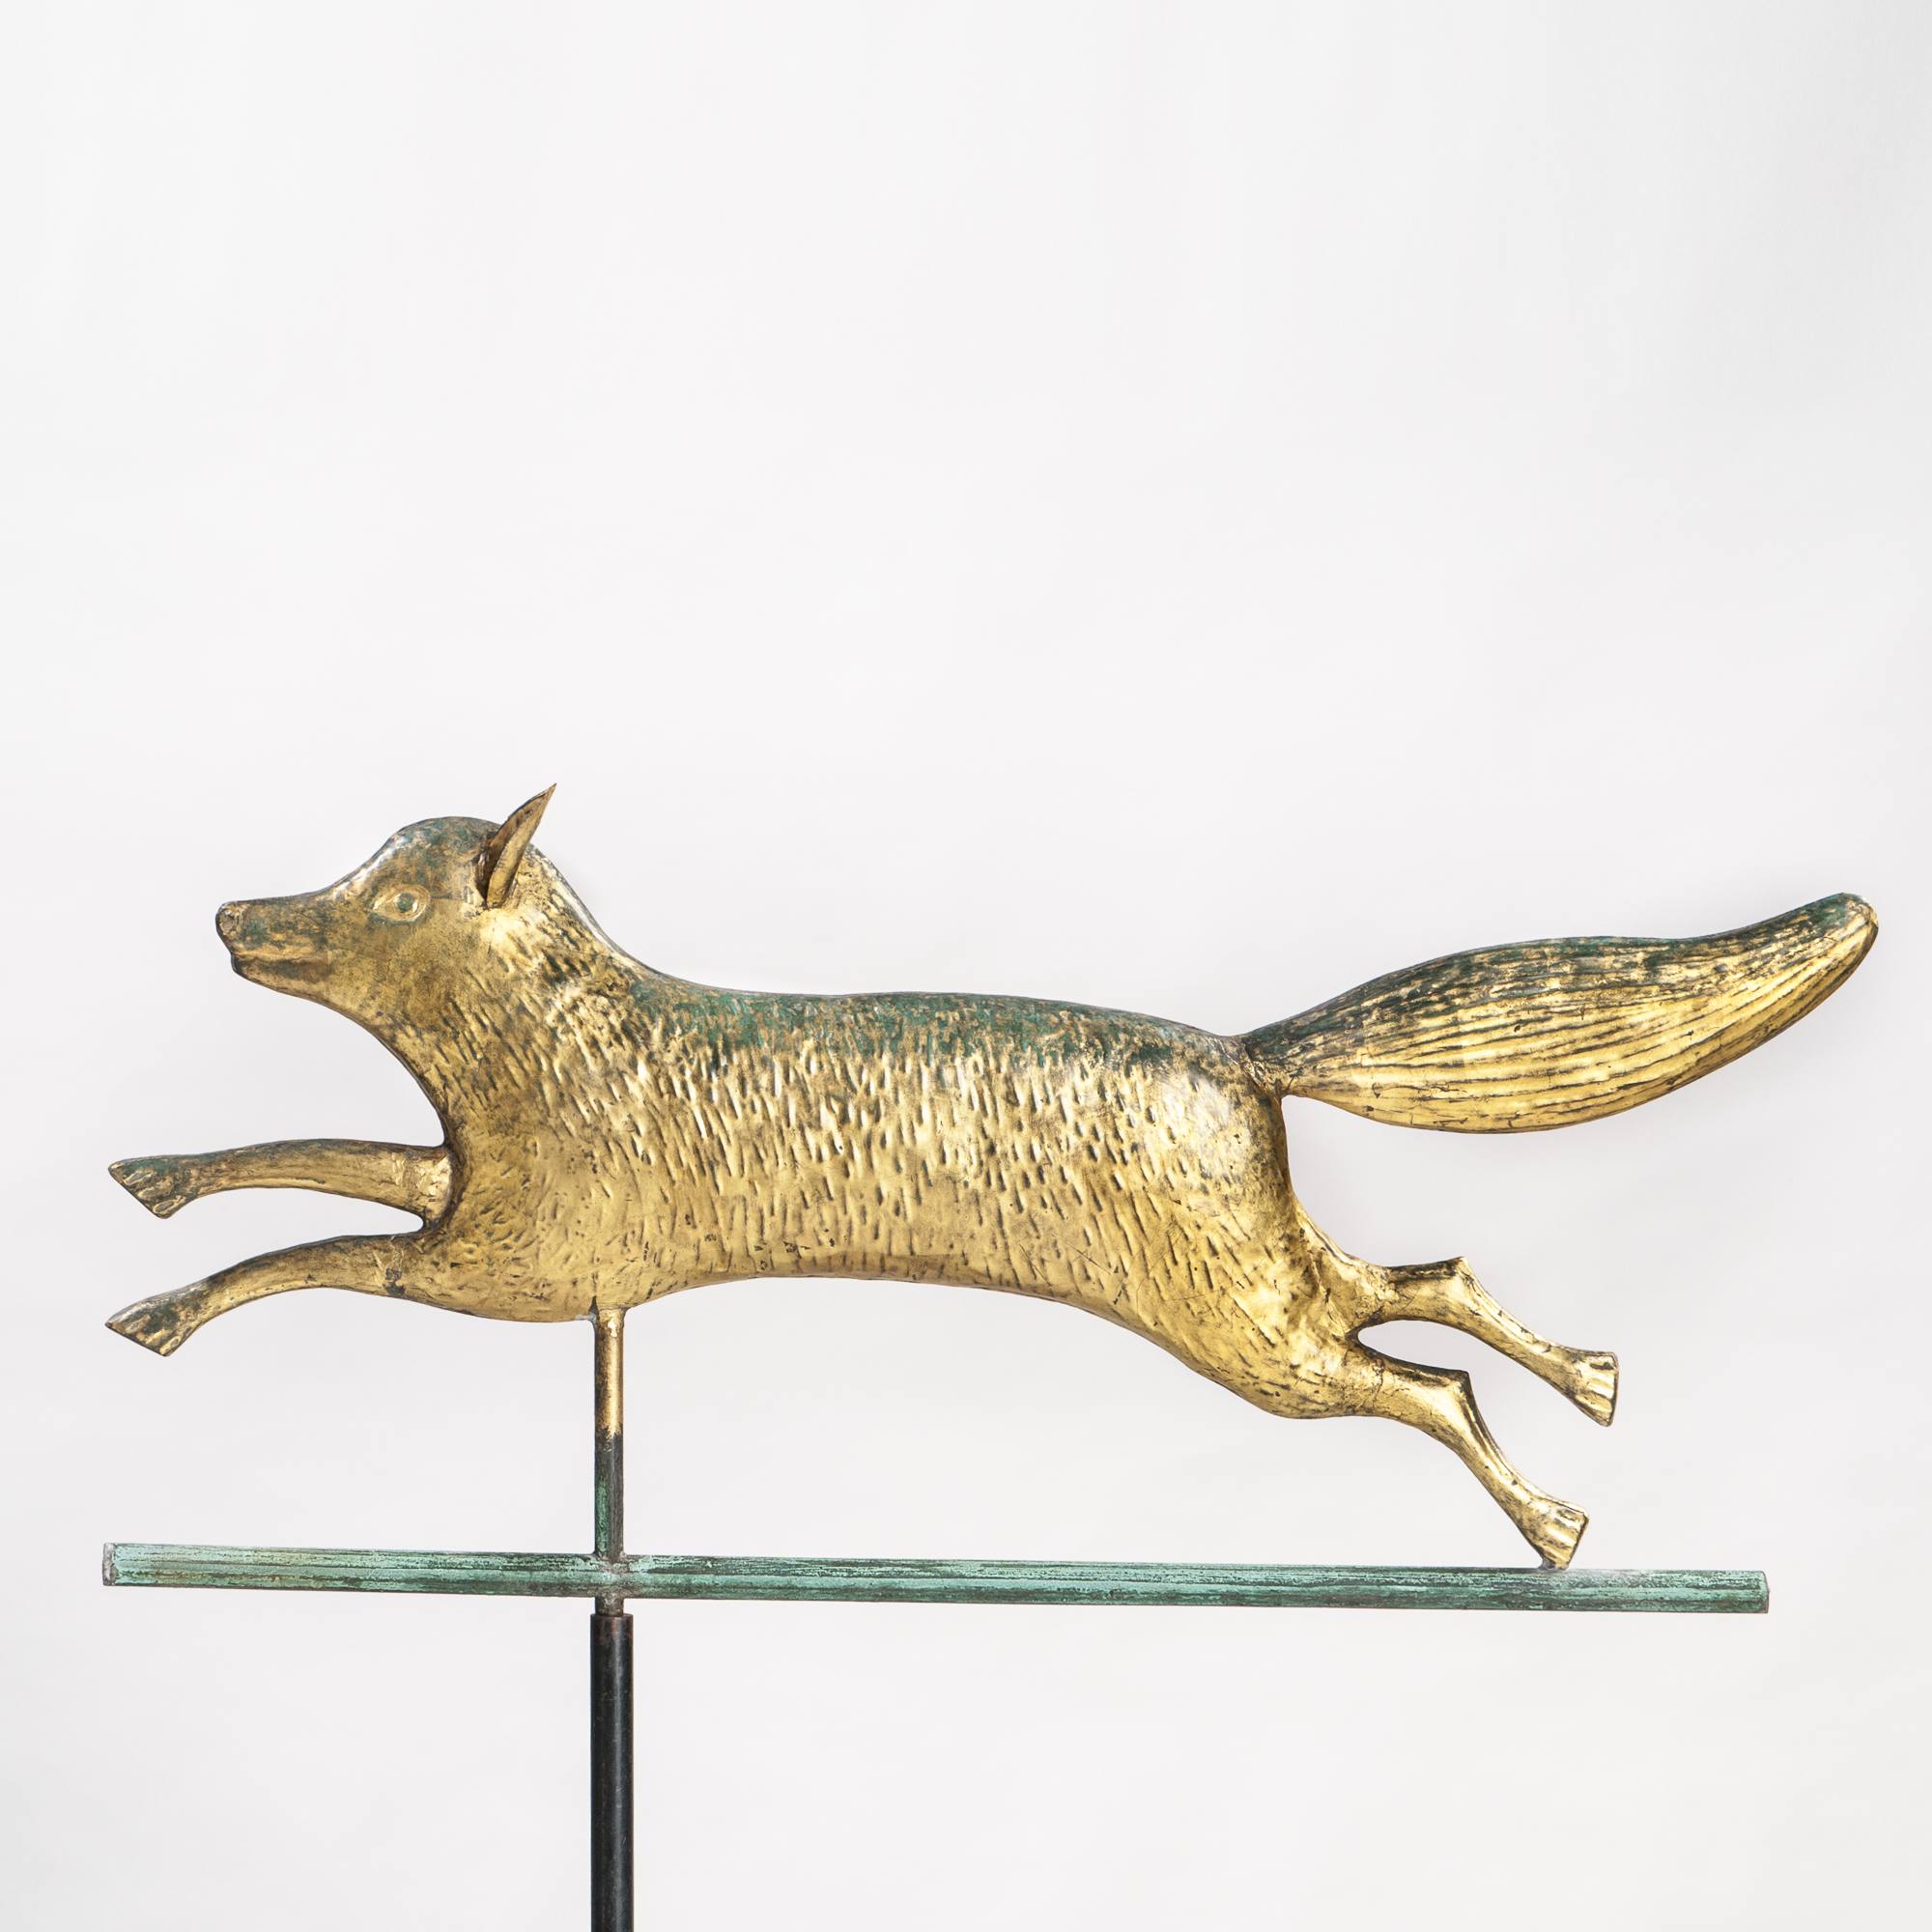 Gilded Molded Sheet Copper Running Fox Weathervane, New England, late 19th century (Lot 391, Estimate: $4,000-6,000)